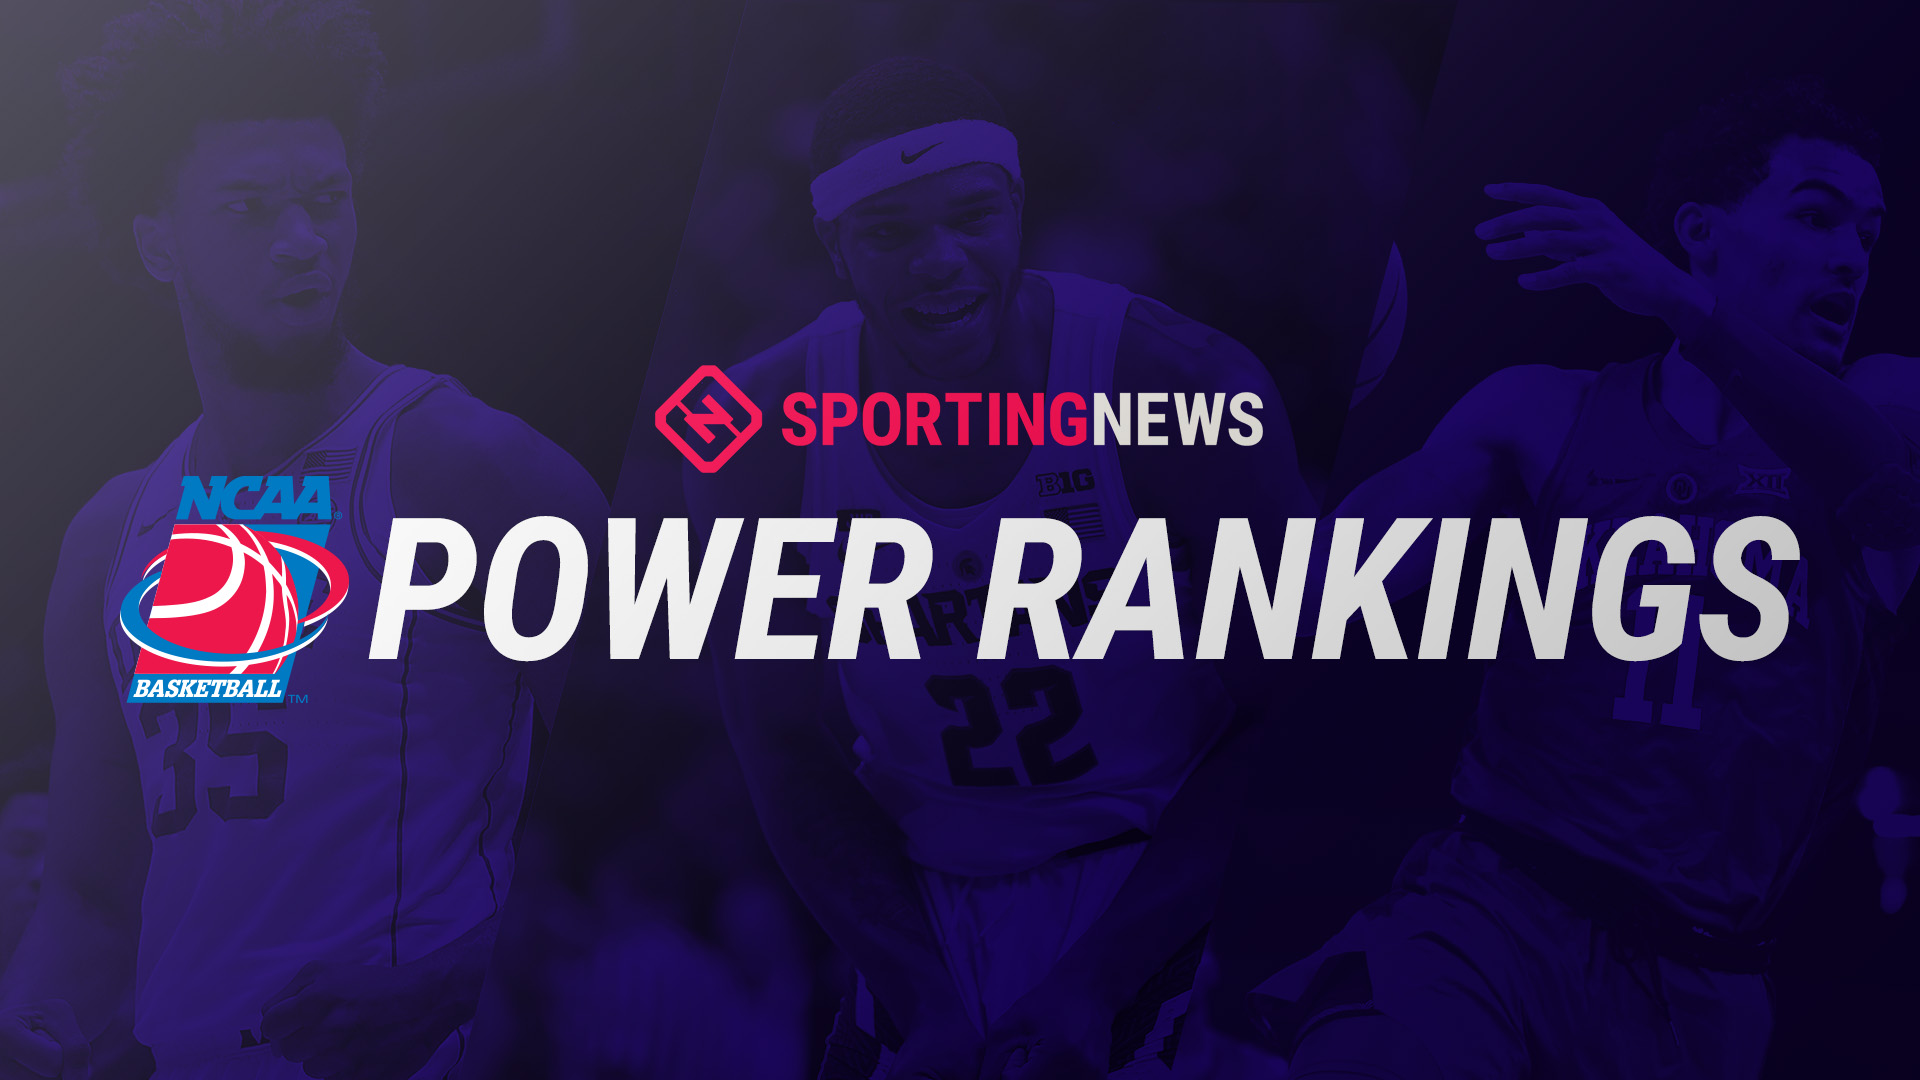 College Basketball Power Rankings: Michigan State reigns, Duke slips, Kentucky vanishes